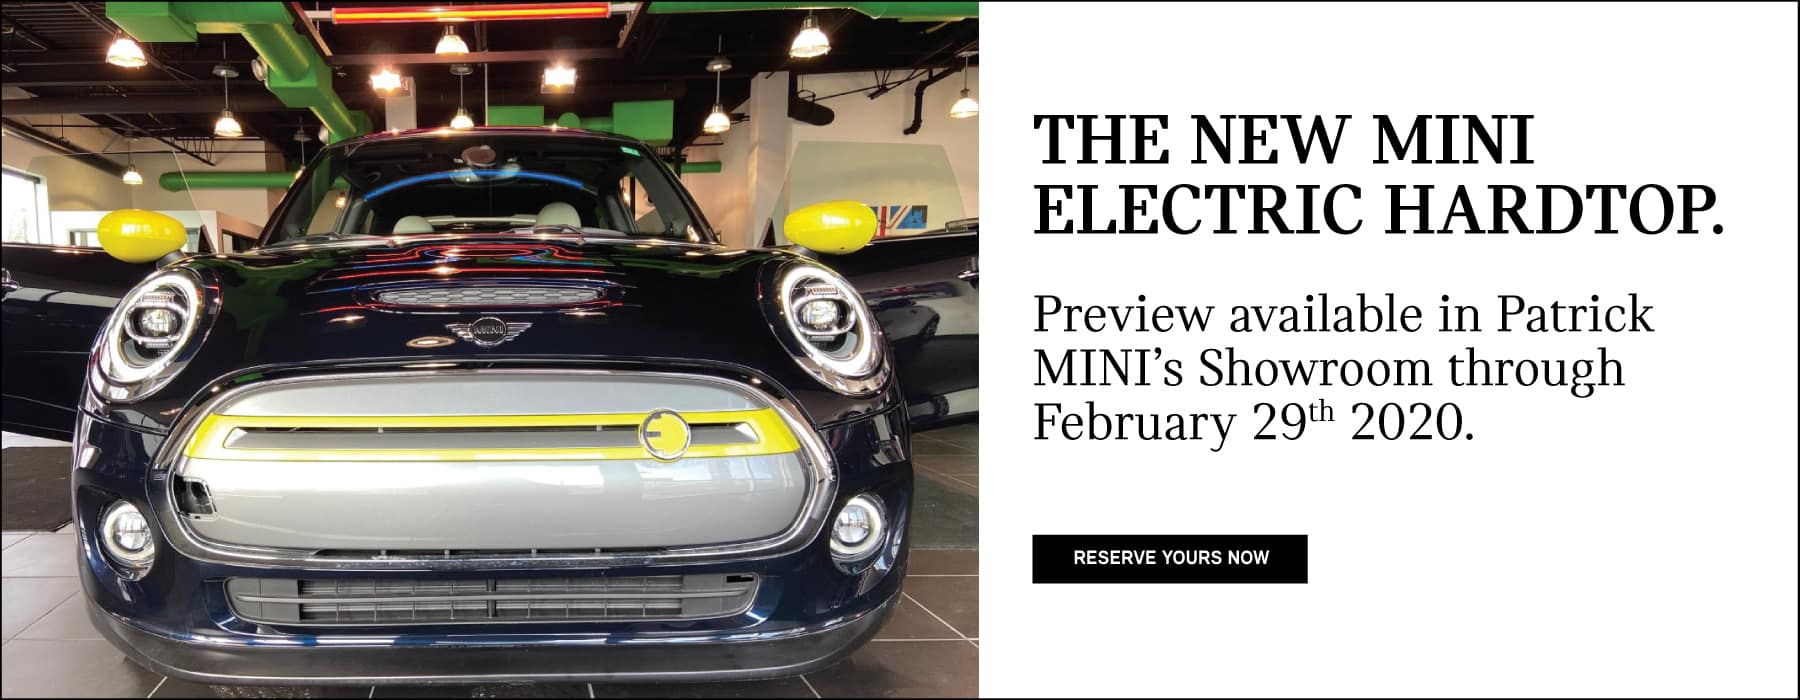 the new electric is now available for preview in Patrick MINIs showroom through february 29th 2020.